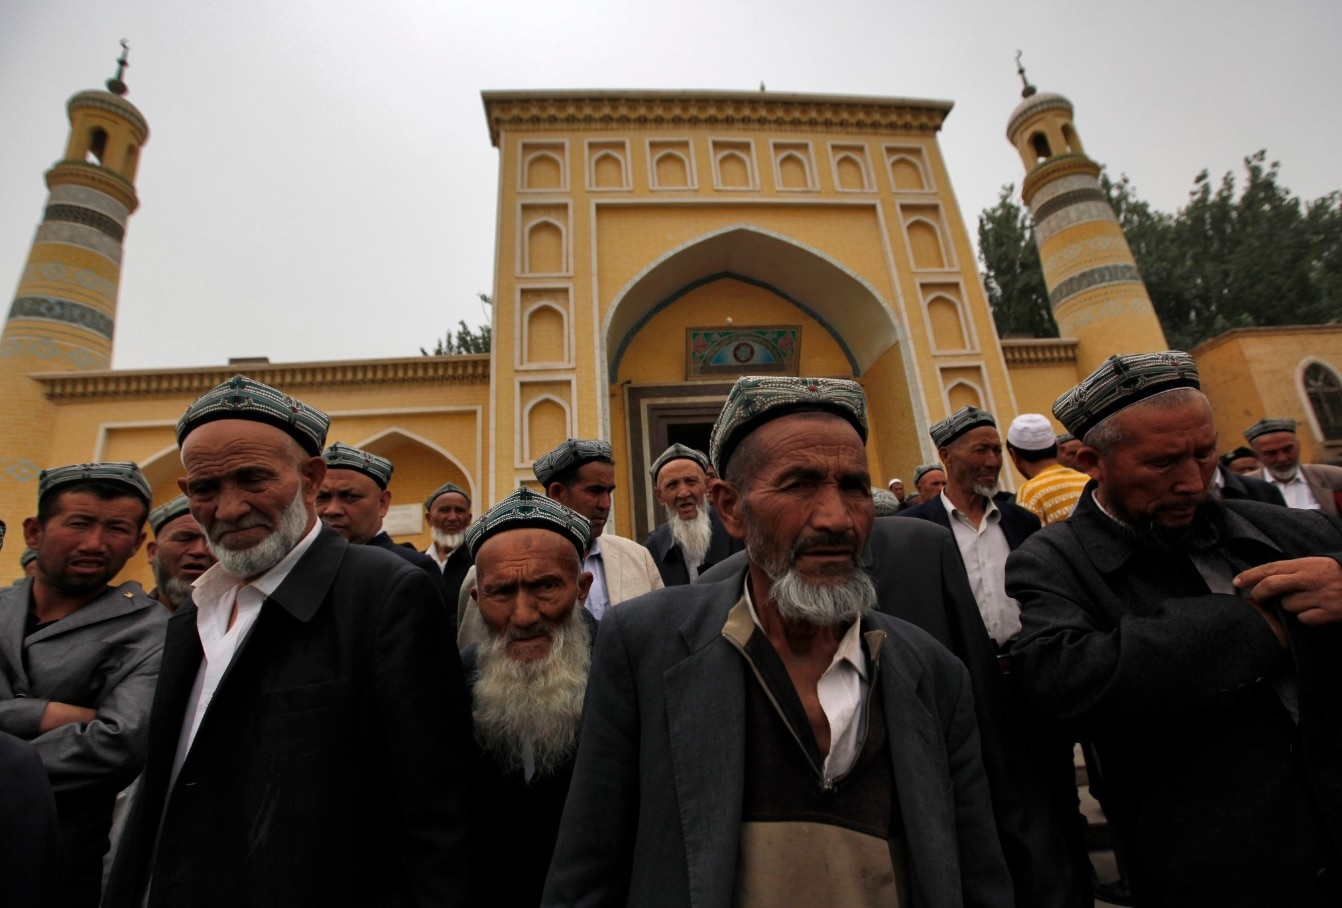 Muslim men of the Uighur ethnic group leave the Id Kah Mosque after Friday prayers in Kashgar, Xinjiang